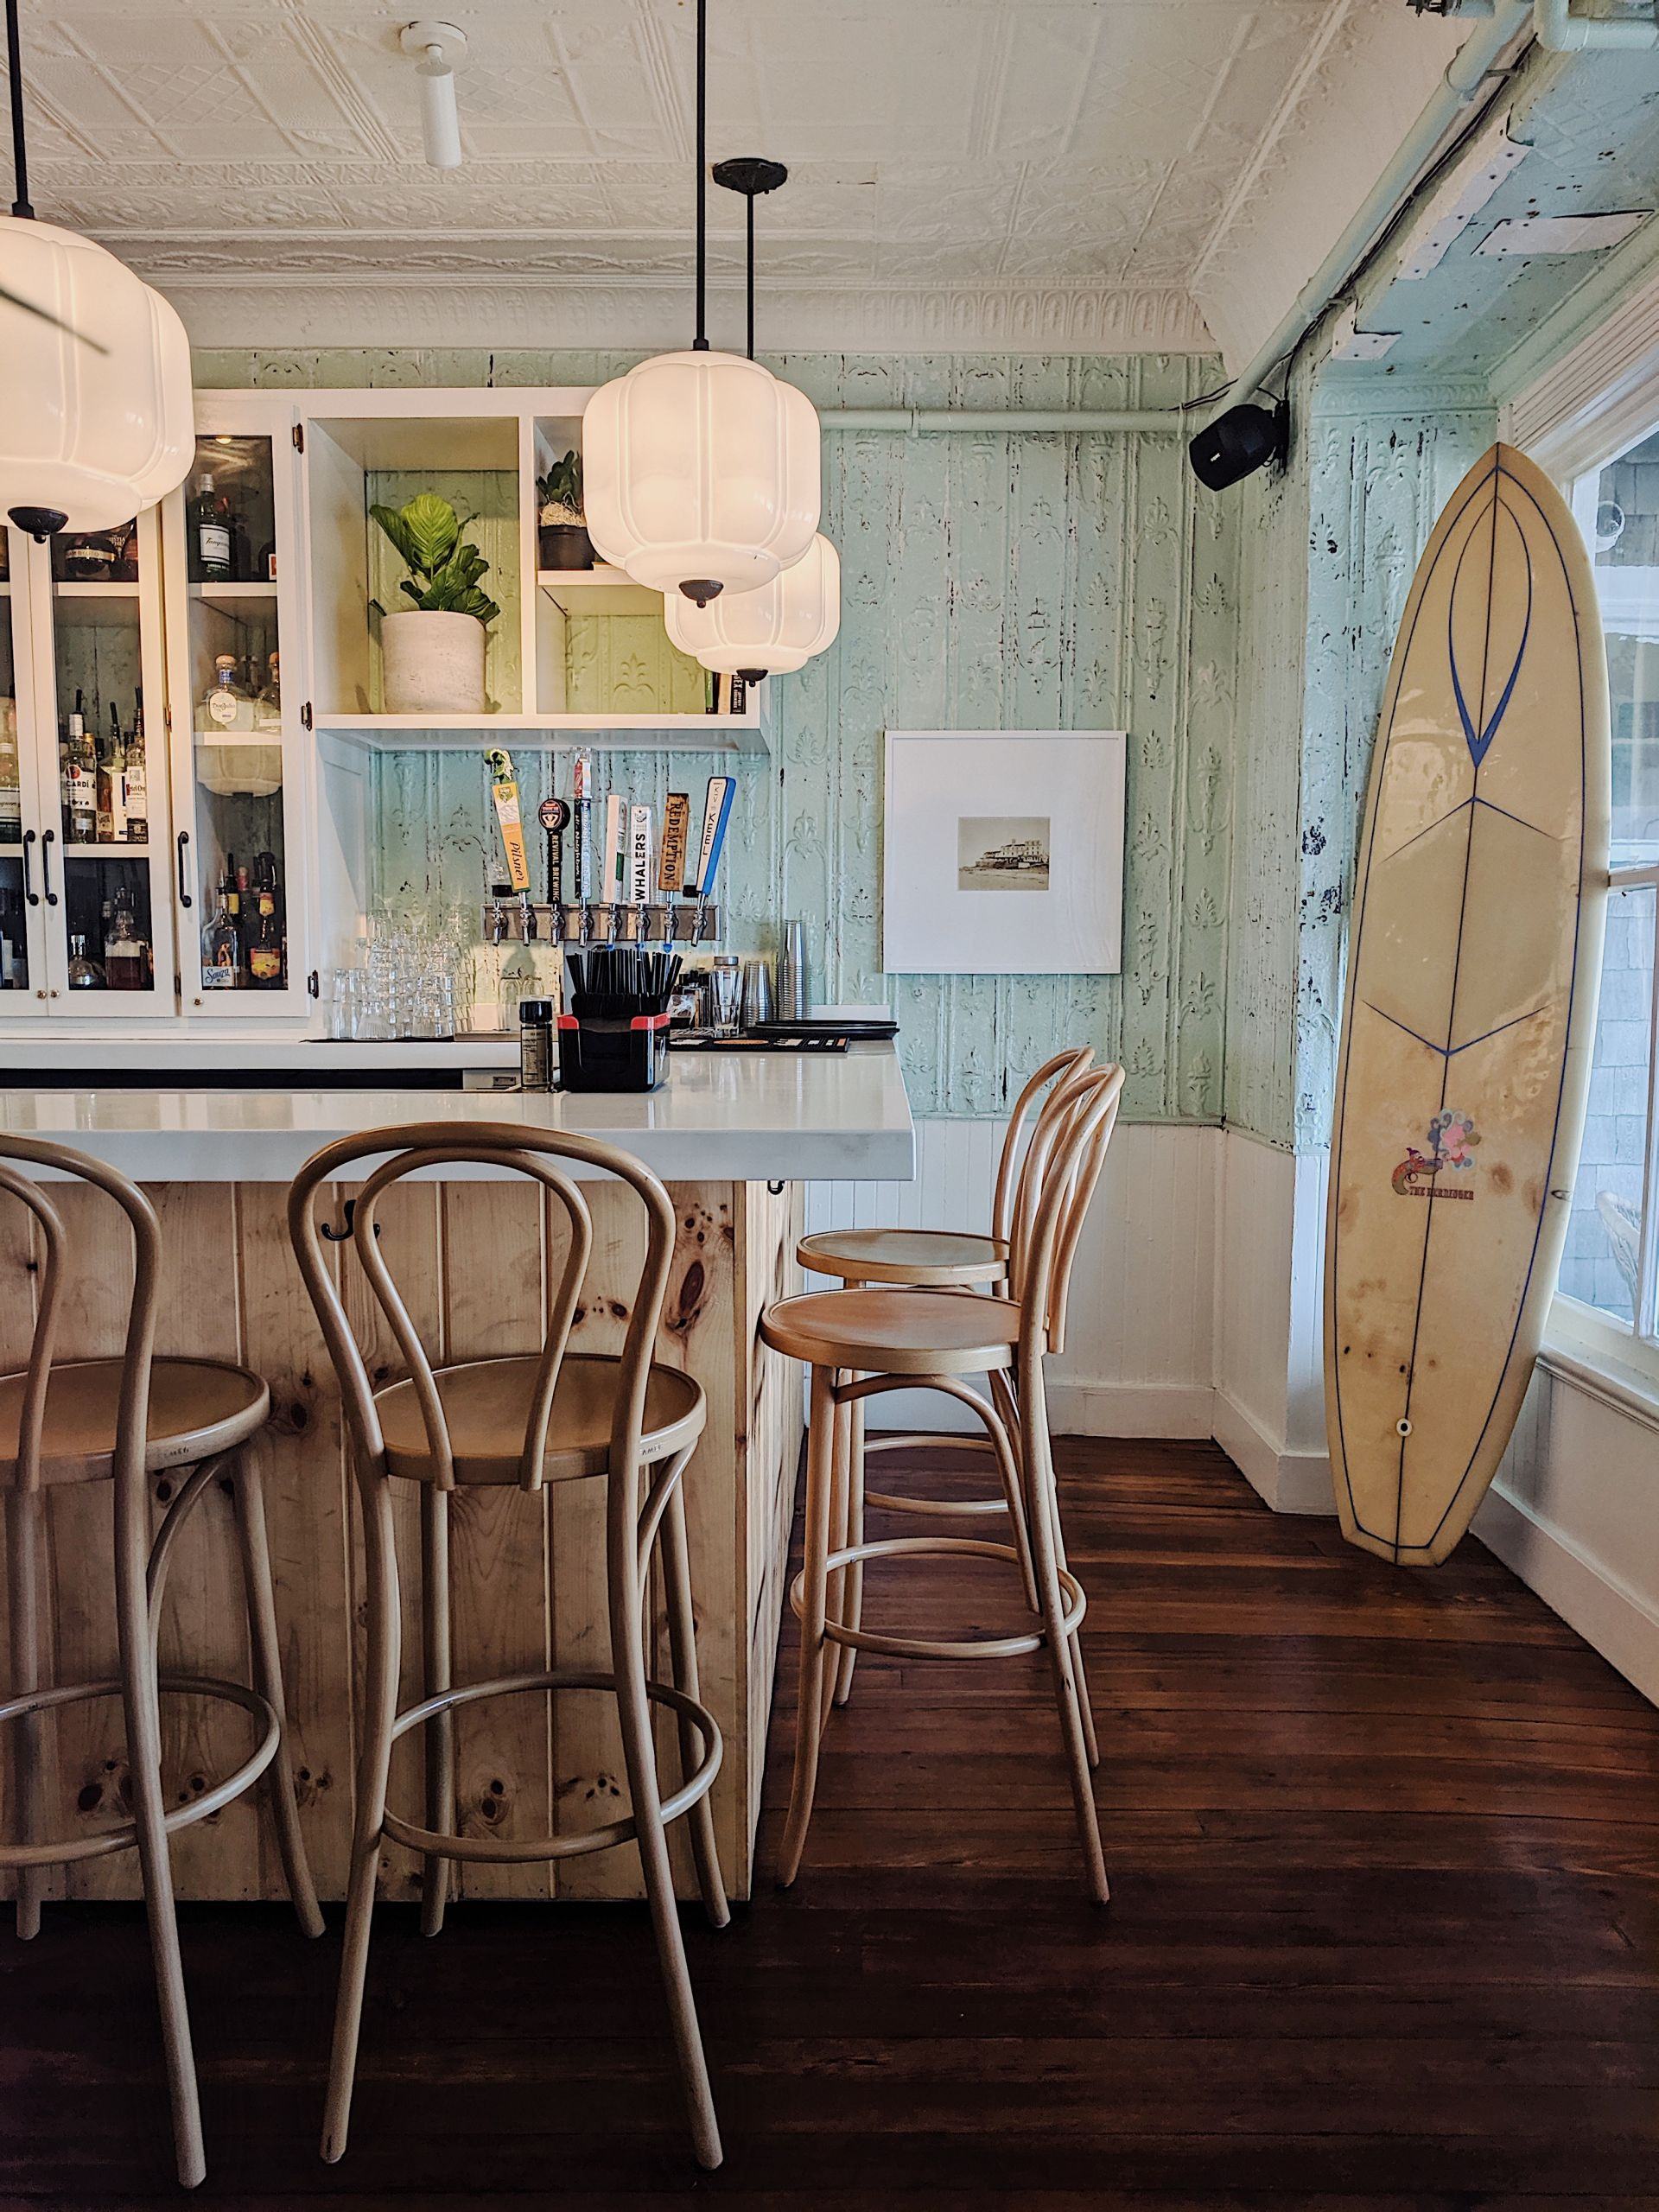 Travel blogger Meaghan Murray shares a review of The Block Island Beach House on Block Island, Rhode Island on her blog The Stopover